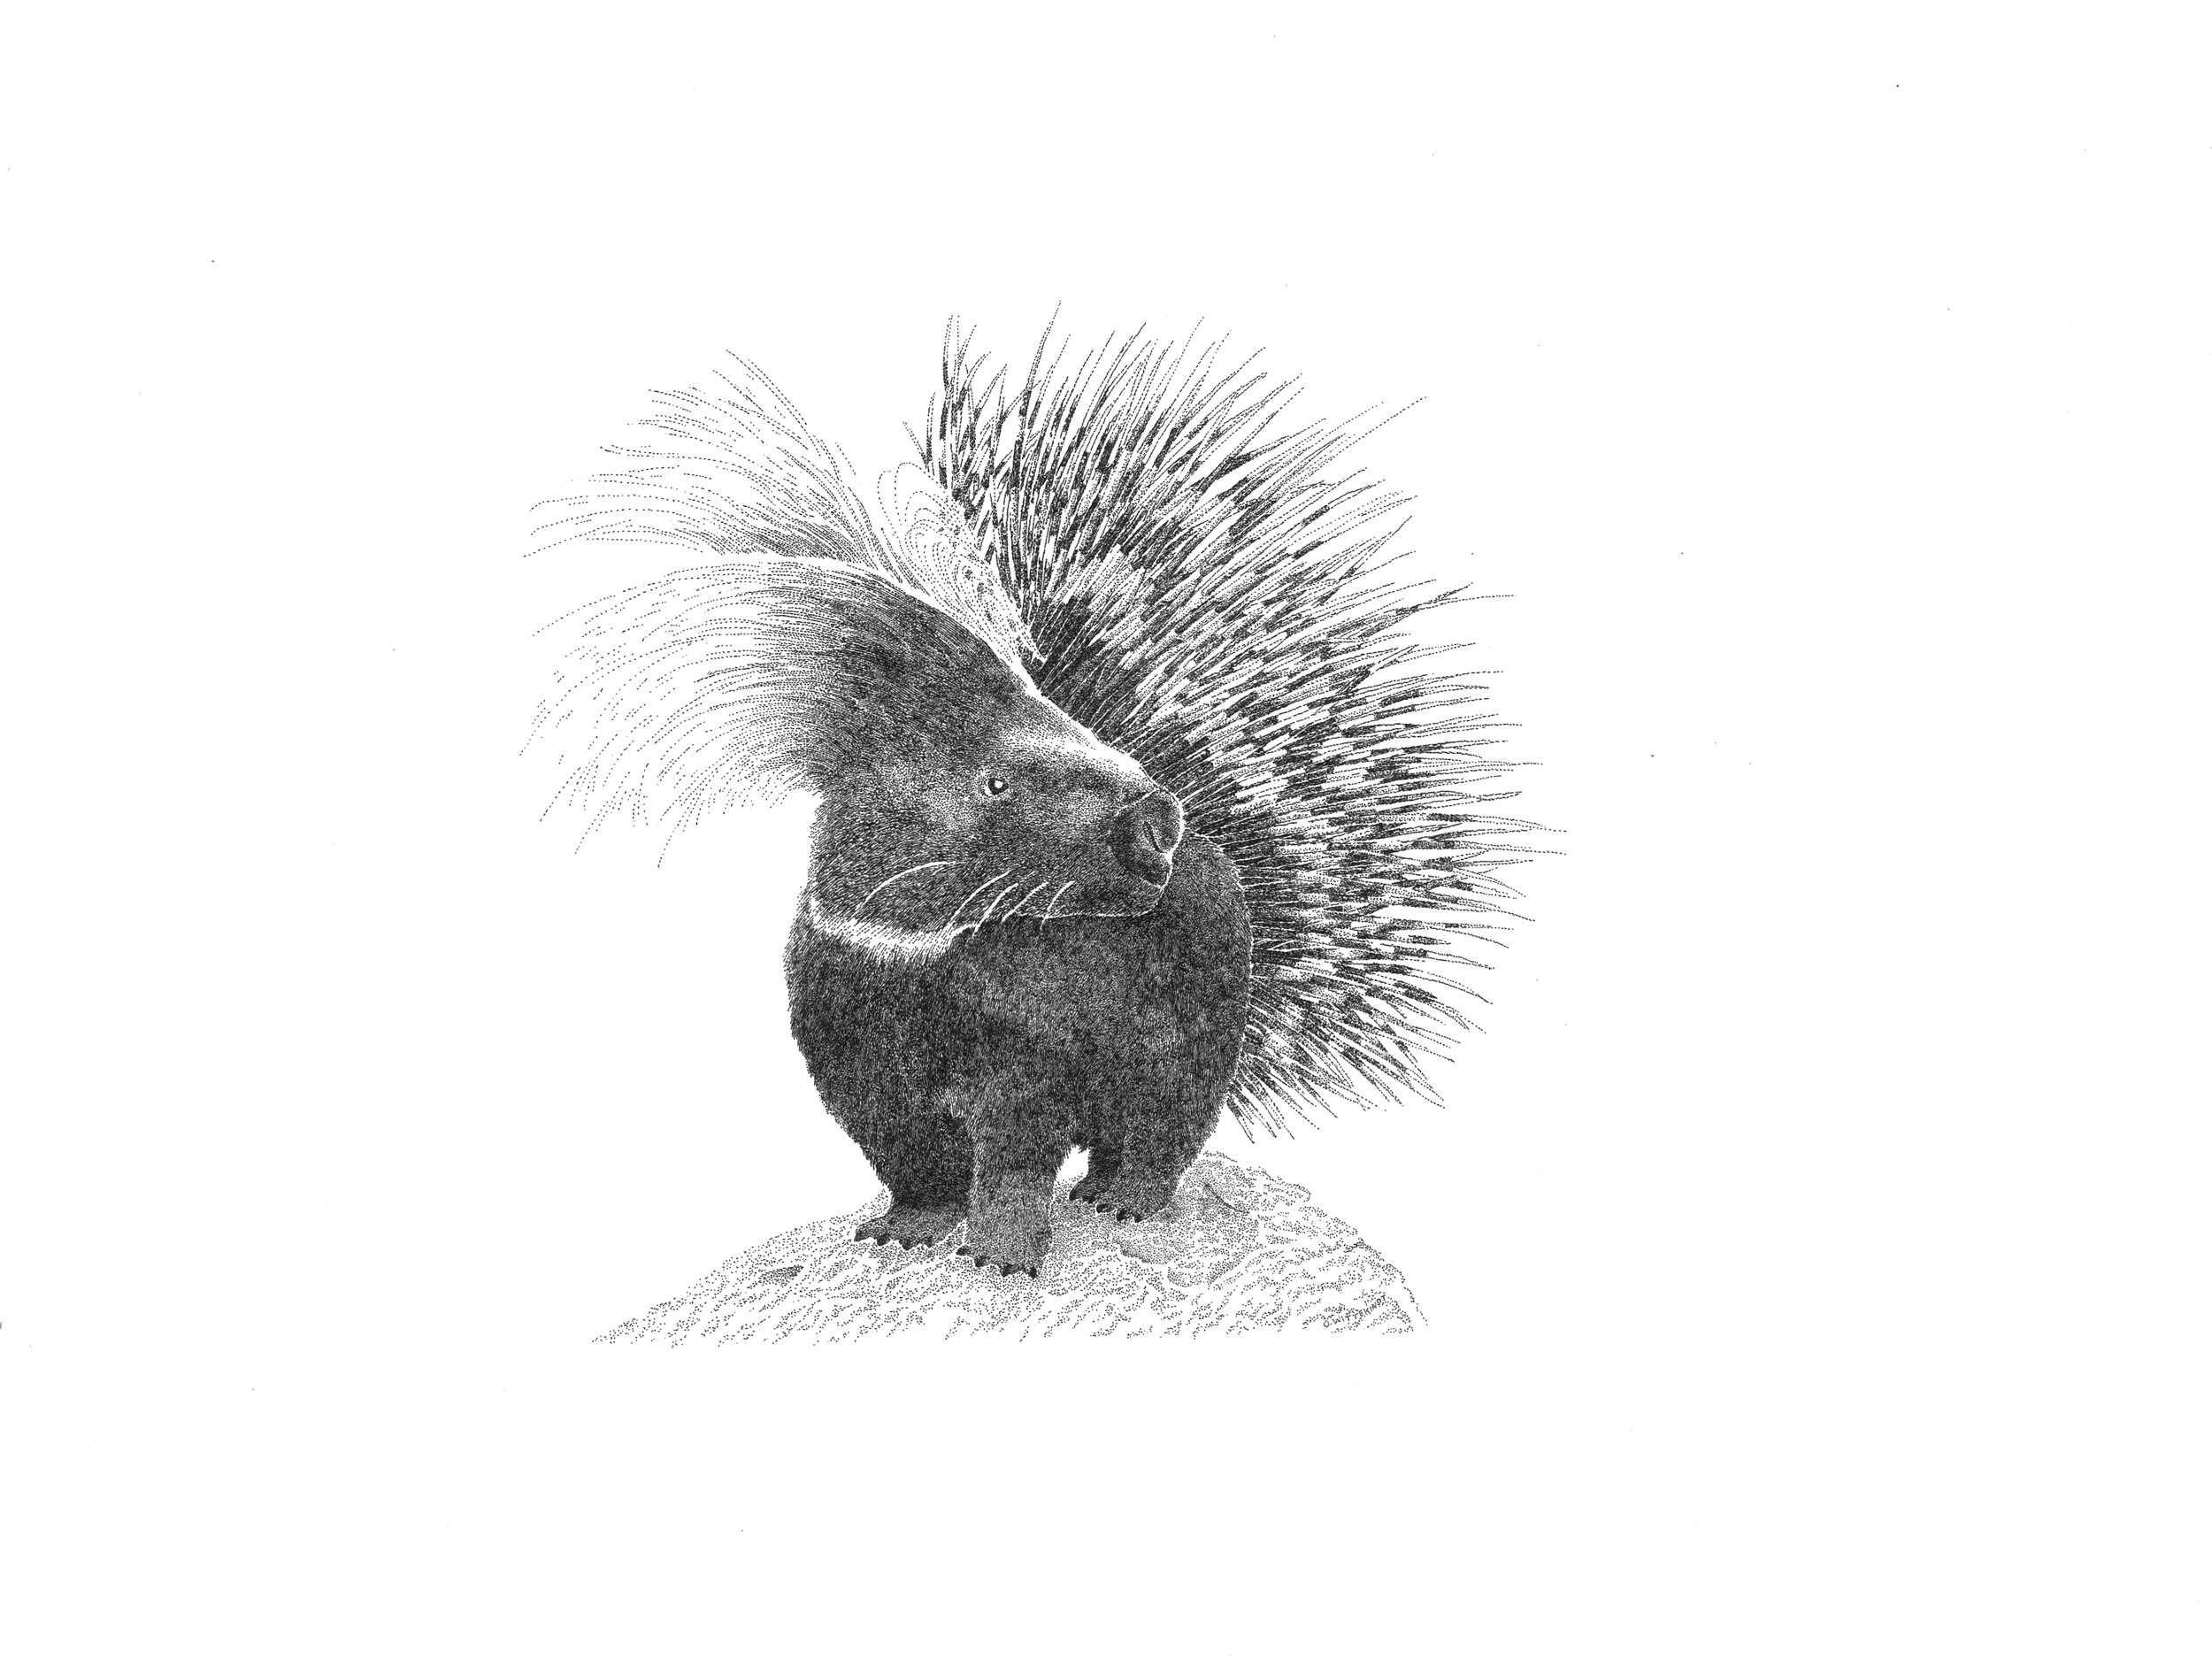 Bedhead the Porcupine